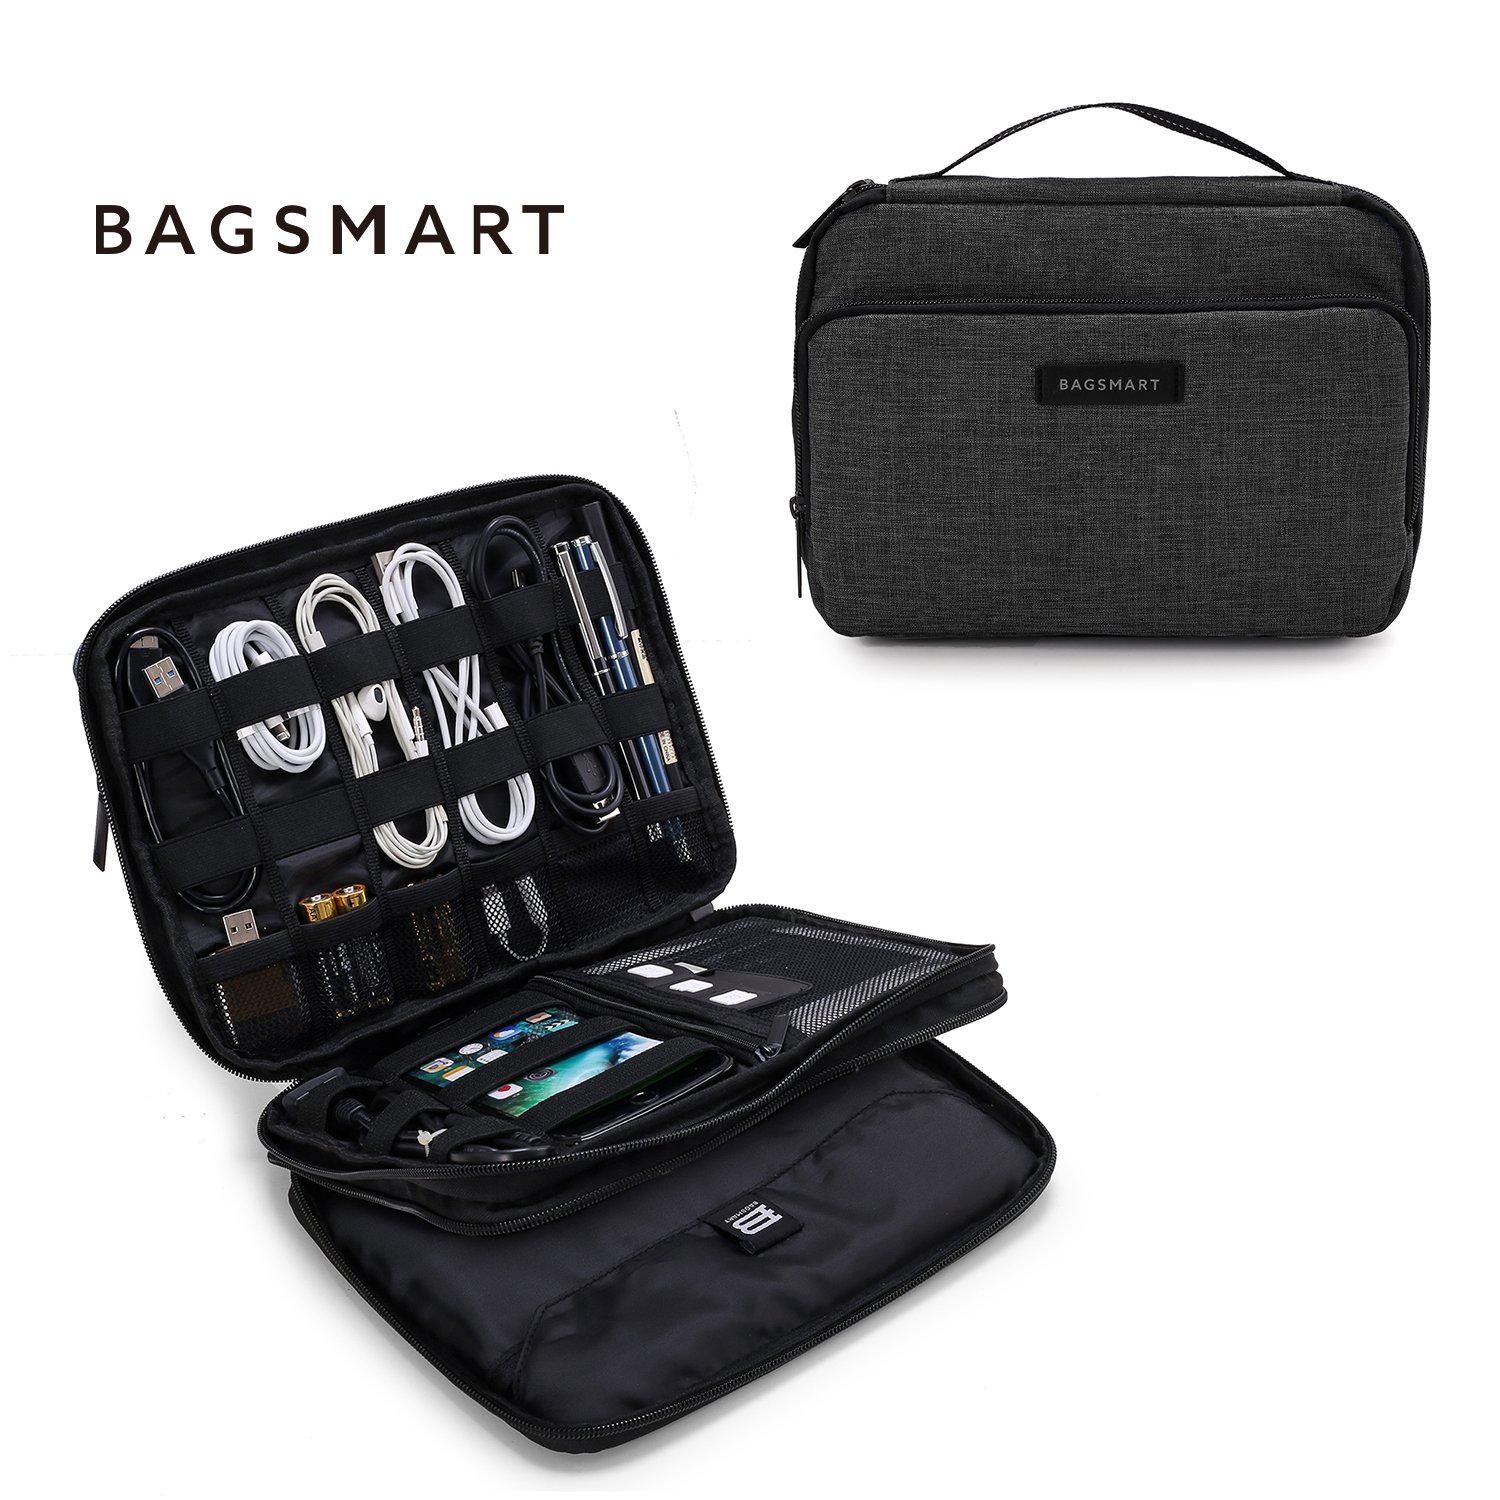 BAGSMART 3-layer Travel Electronics Cable Organizer Bag for 9.7'' iPad, Hard Drives, Cables, Charger, Kindle, Black